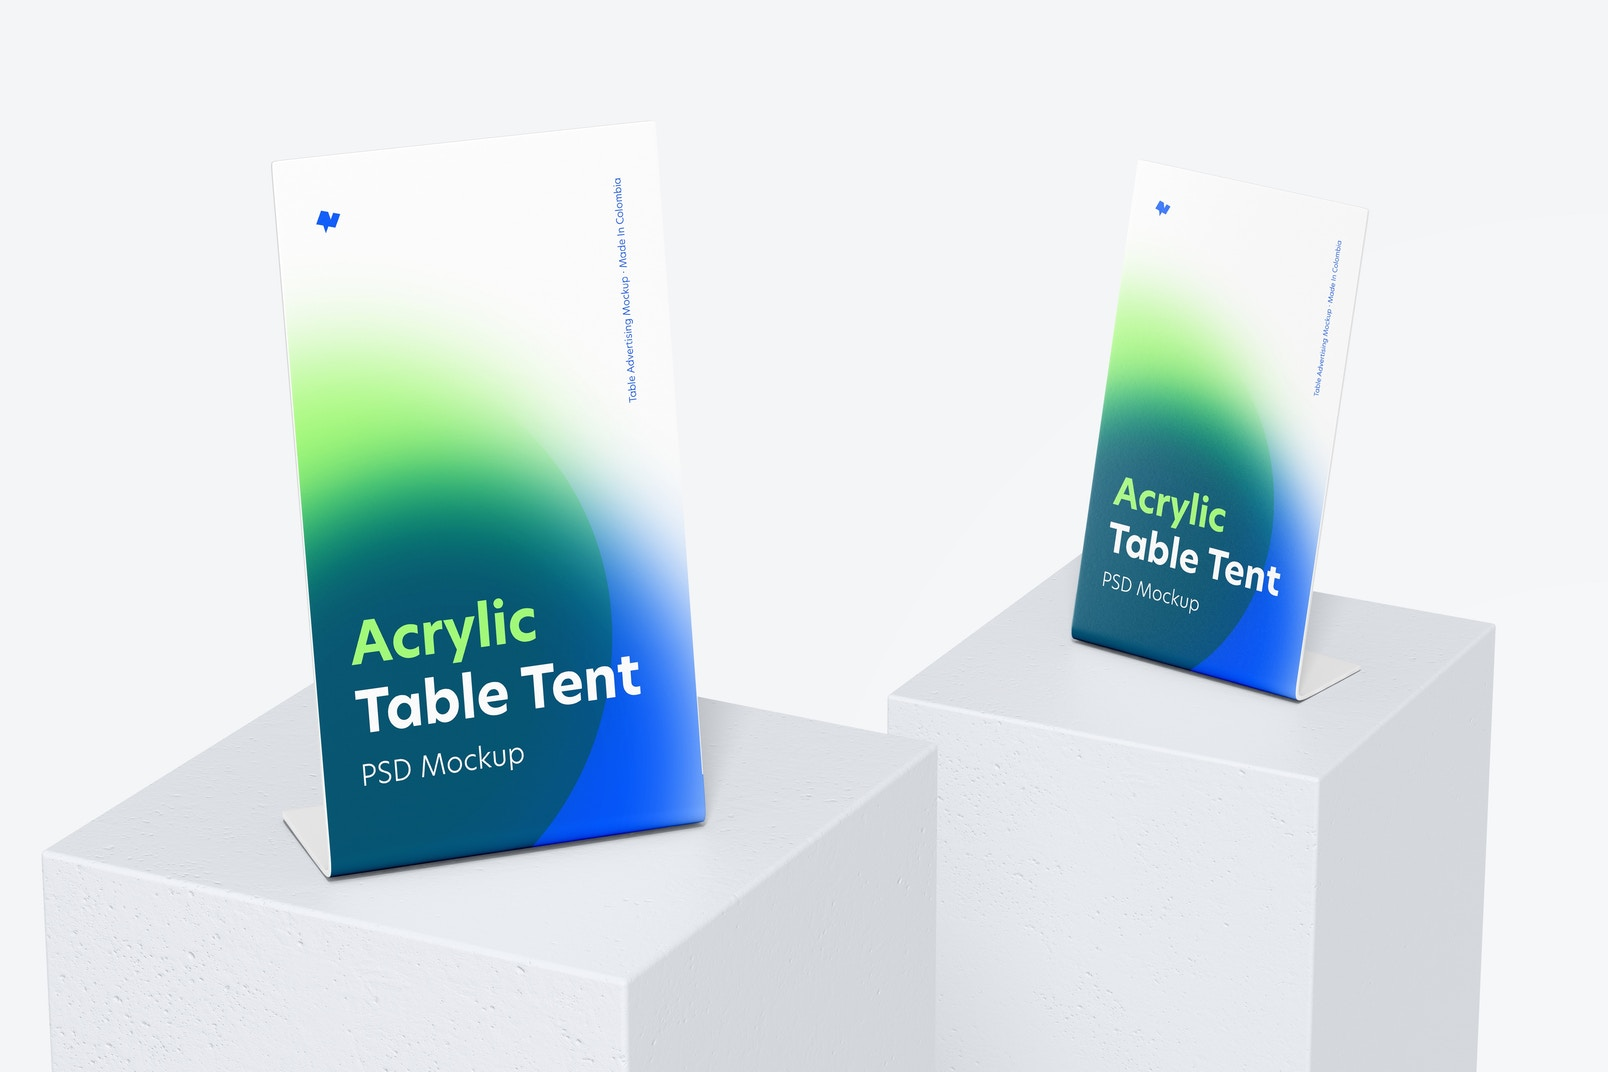 Acrylic Table Tents Mockup, Perspective